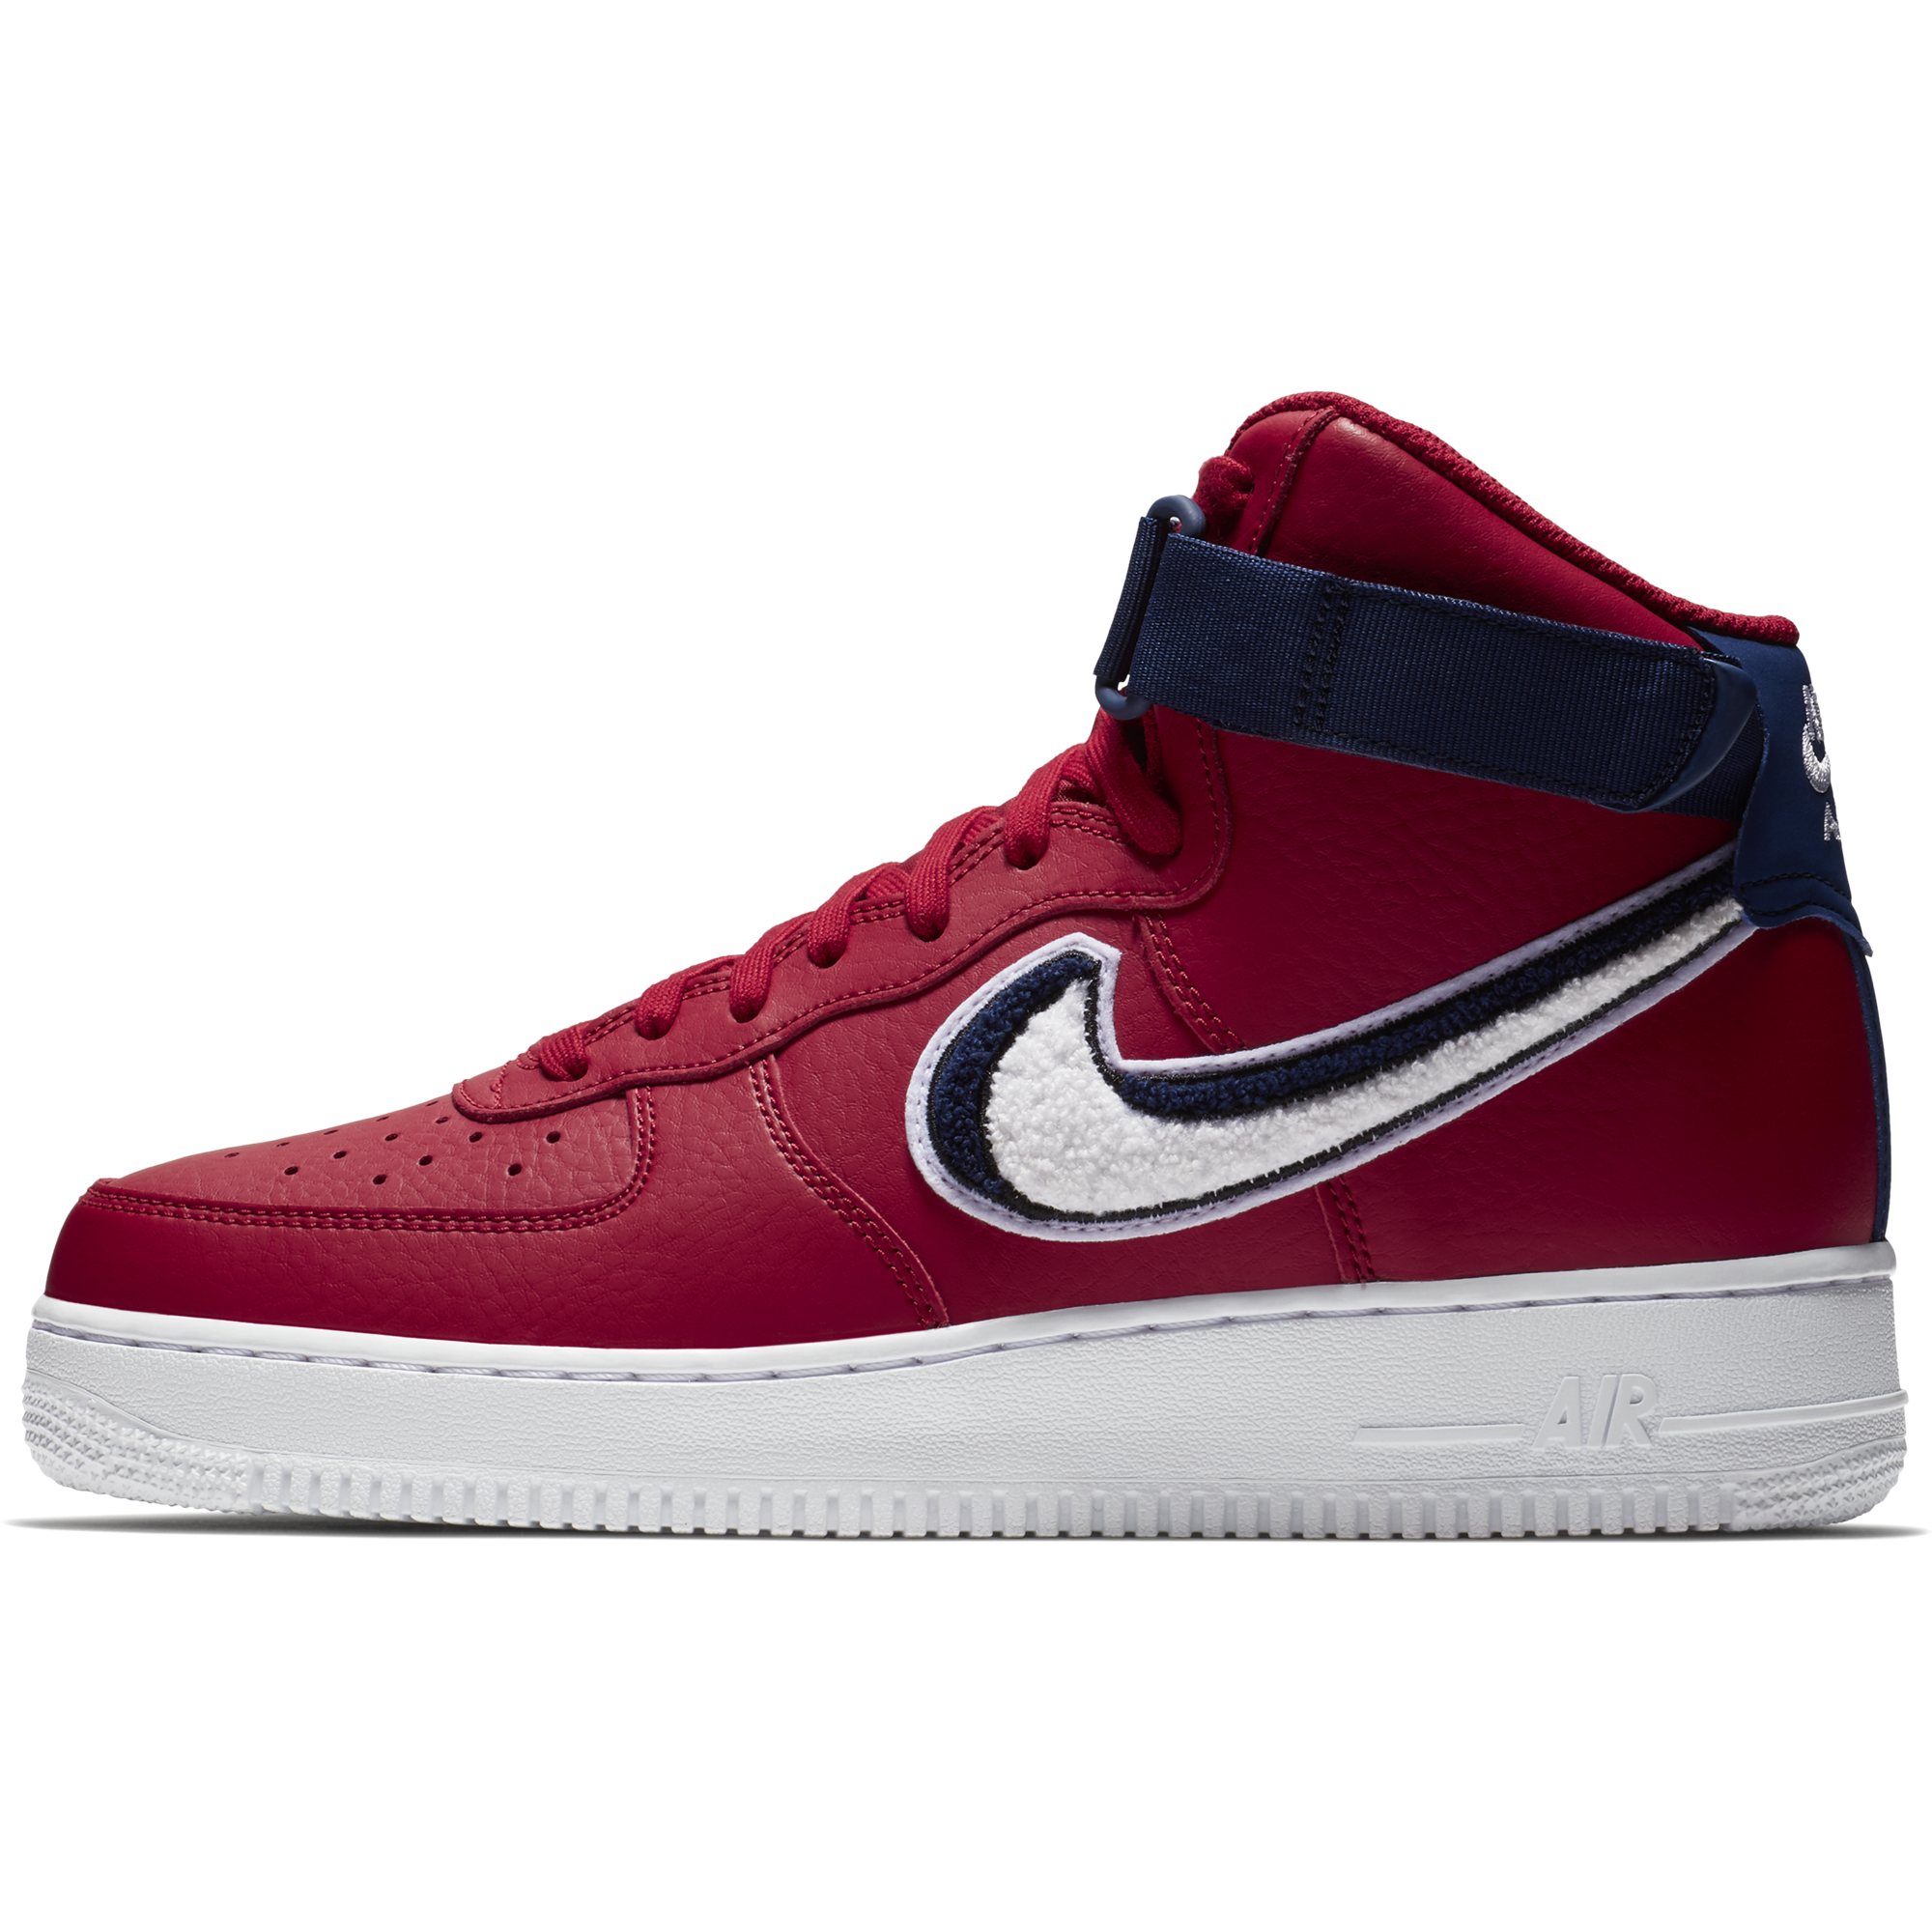 new style cf764 4a89a NIKE - AIR FORCE 1  07 LV8 HIGH